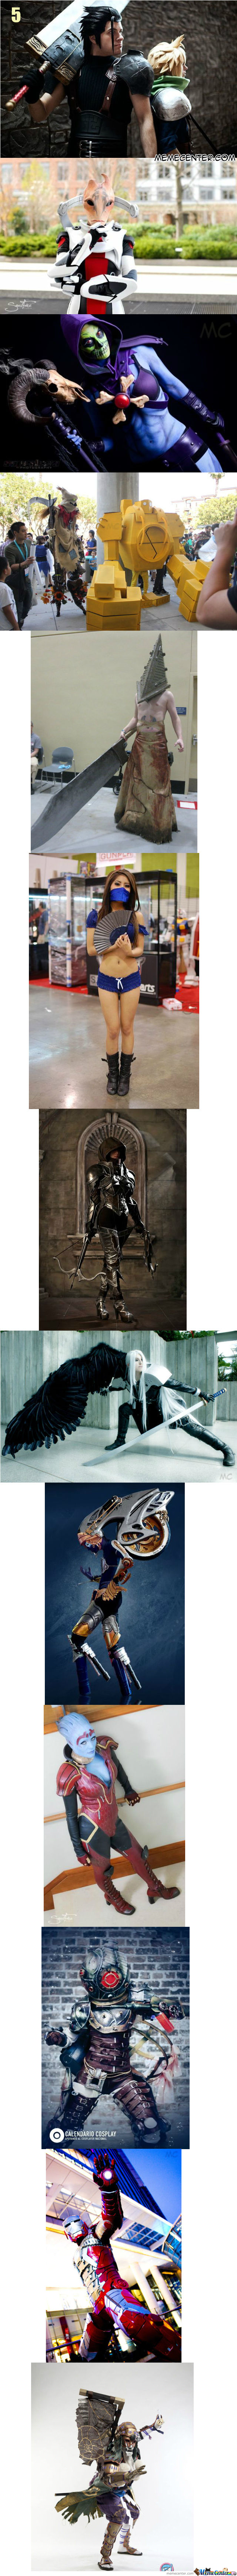 Daily Cosplay Compilation No: 5